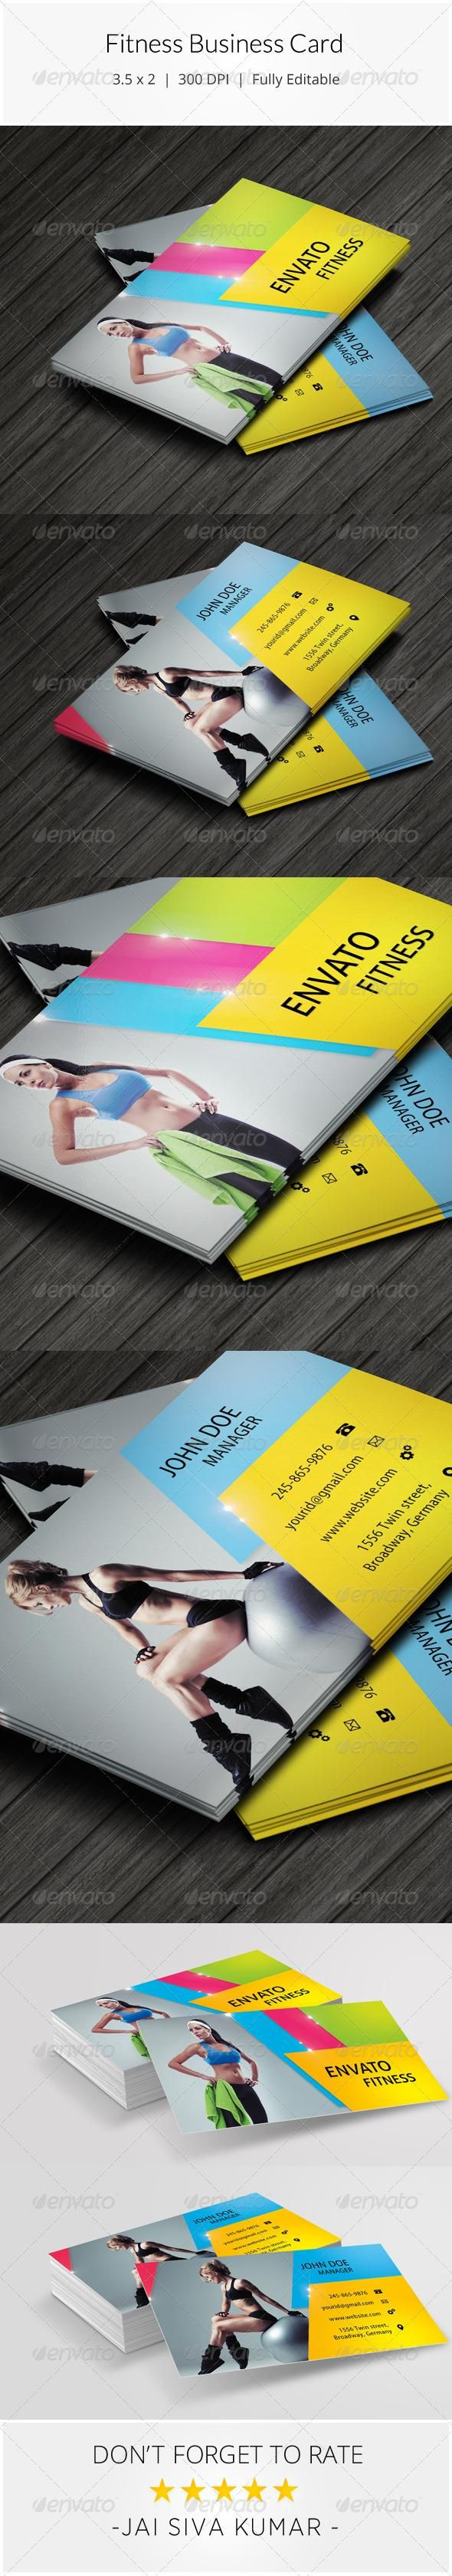 63 best business card images on pinterest behance behavior and fitness business card reheart Gallery